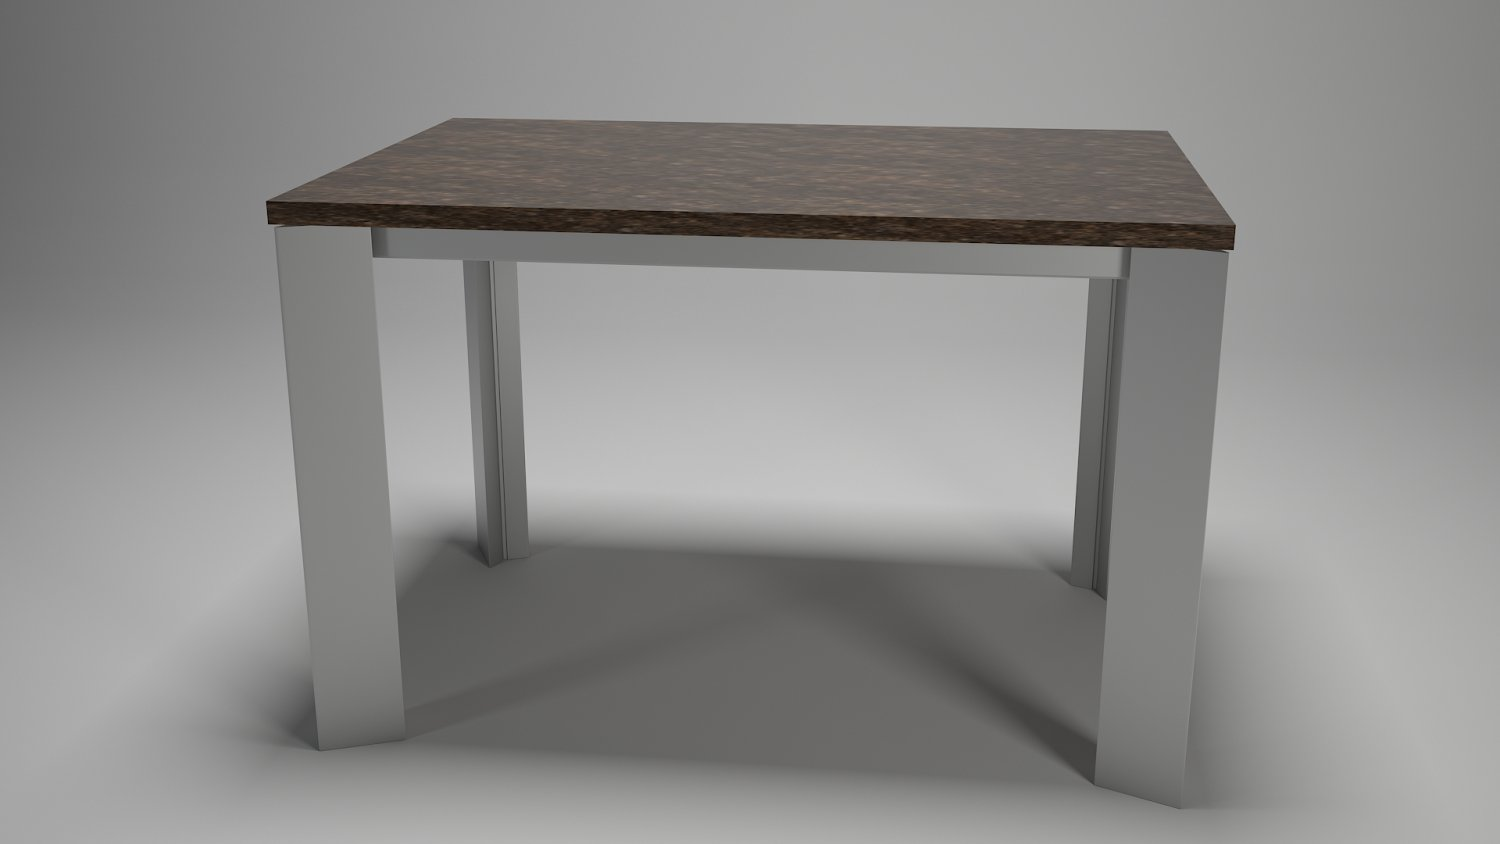 Table For Kitchen Dining Room Steel Wood Materals 3d Model In 3dexport